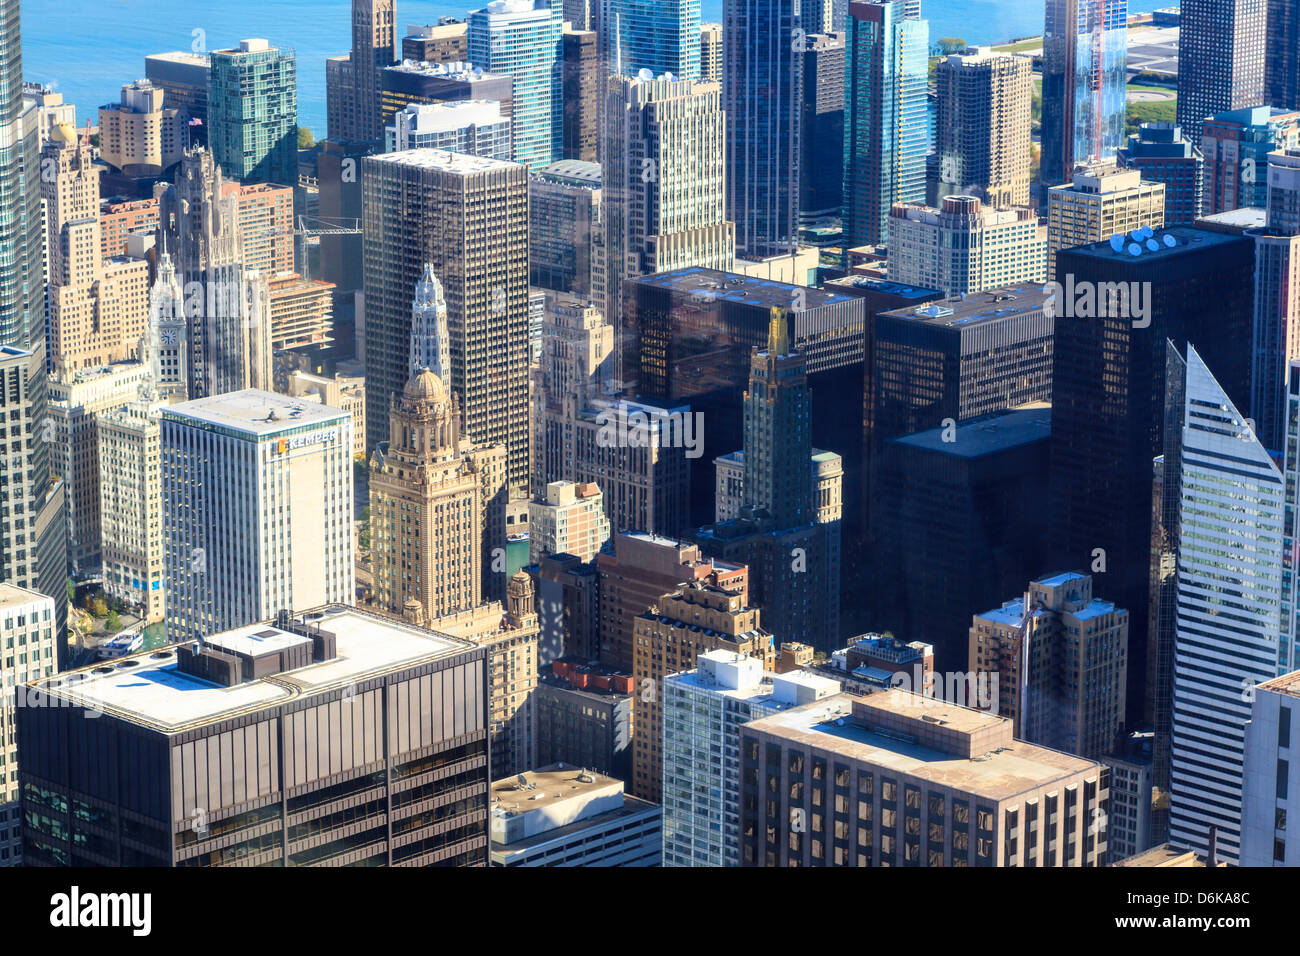 Skyscrapers in Downtown Chicago, Illinois, United States of America, North America - Stock Image